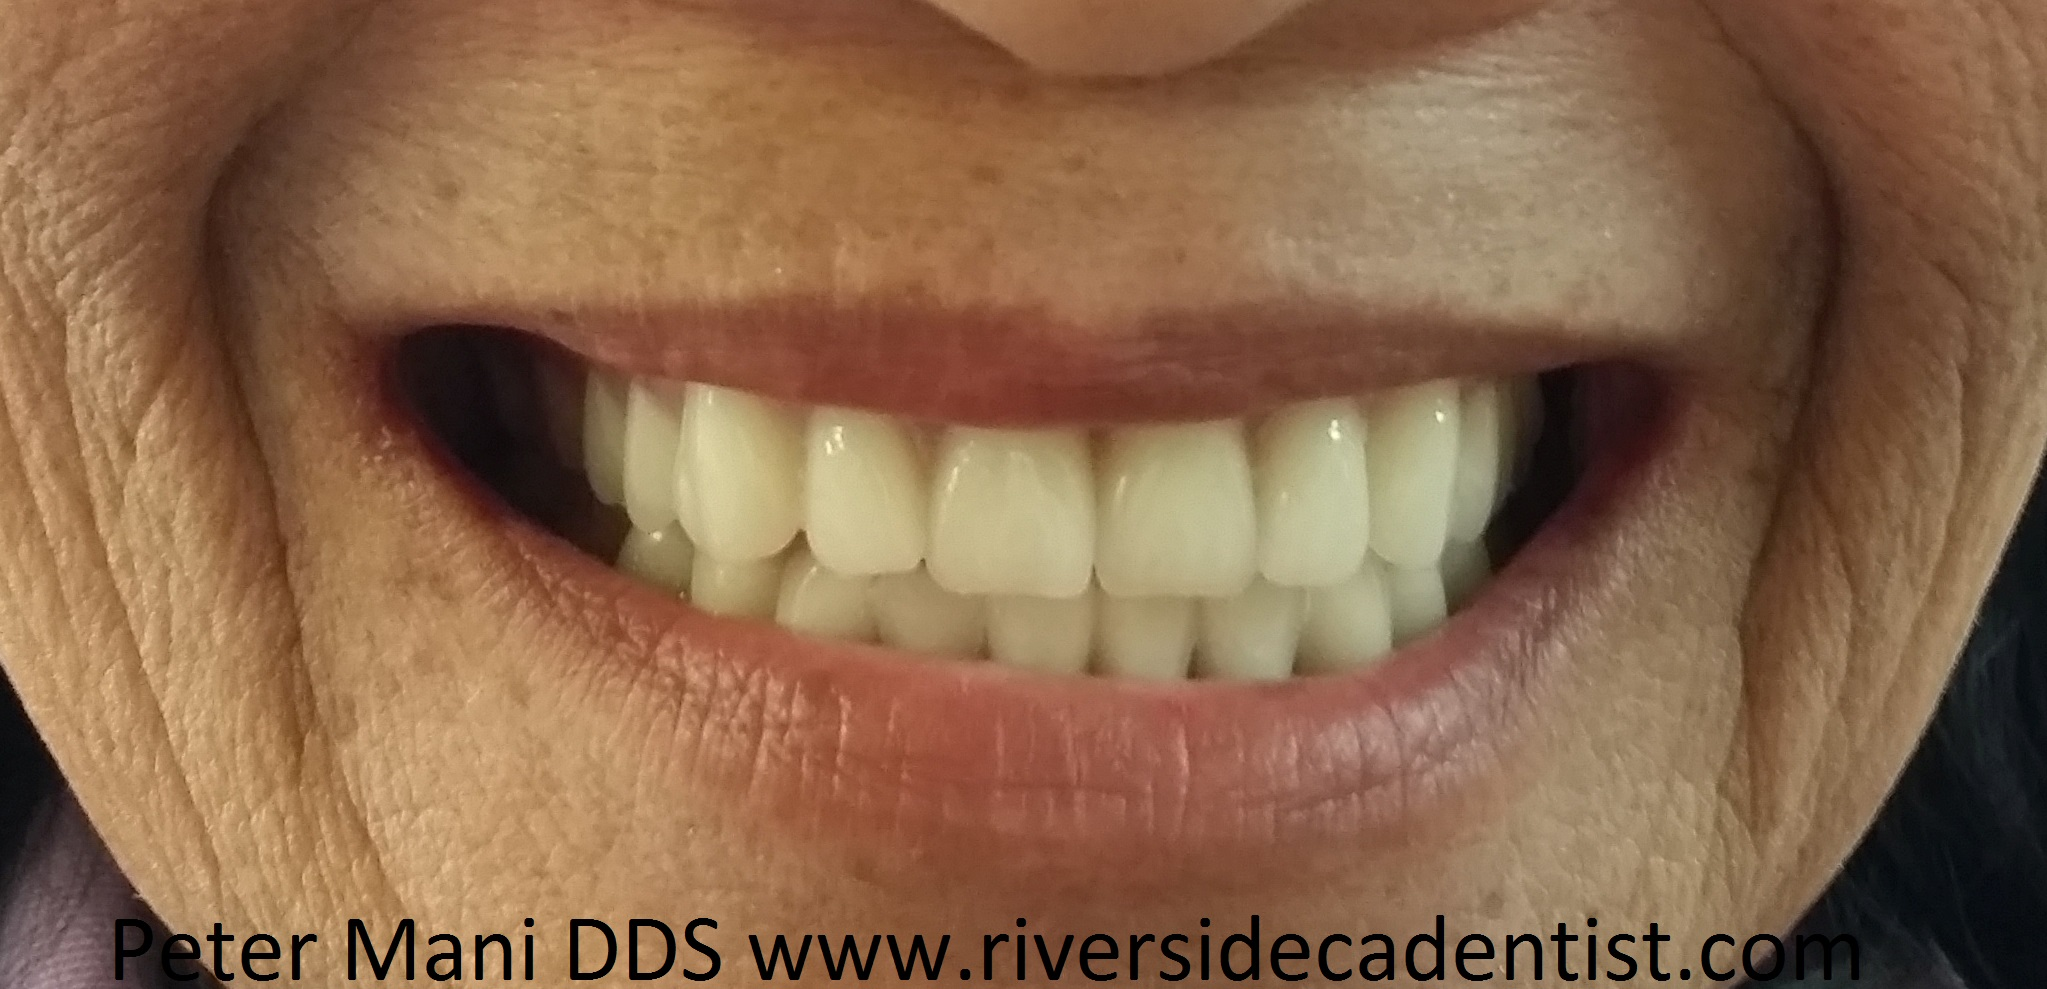 Dentures by Peter Mani DDS part 1